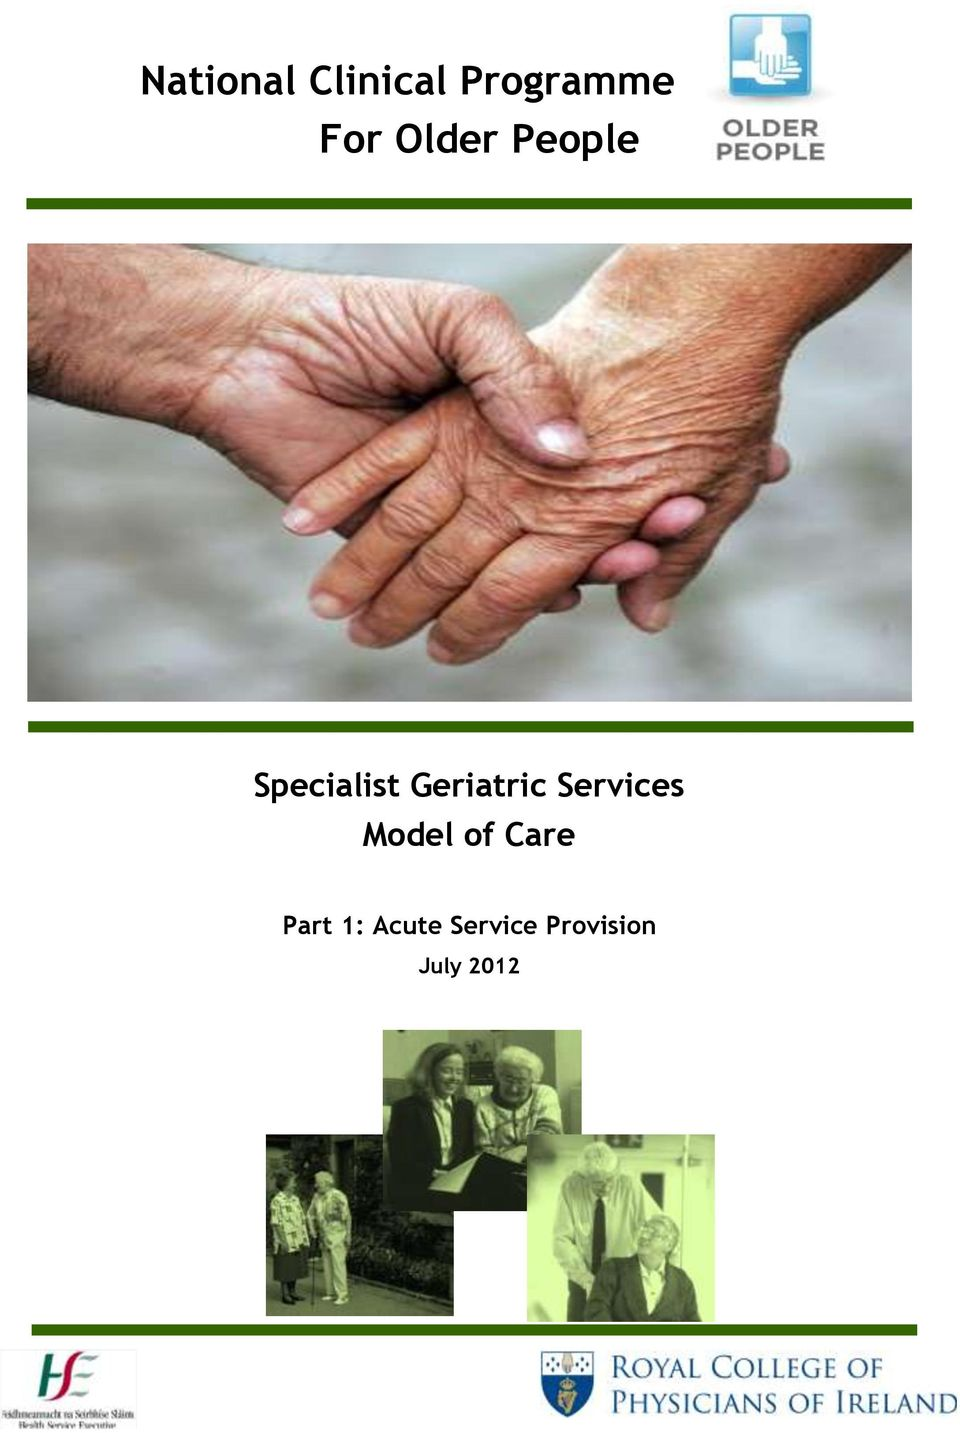 Geriatric Services Model of Care